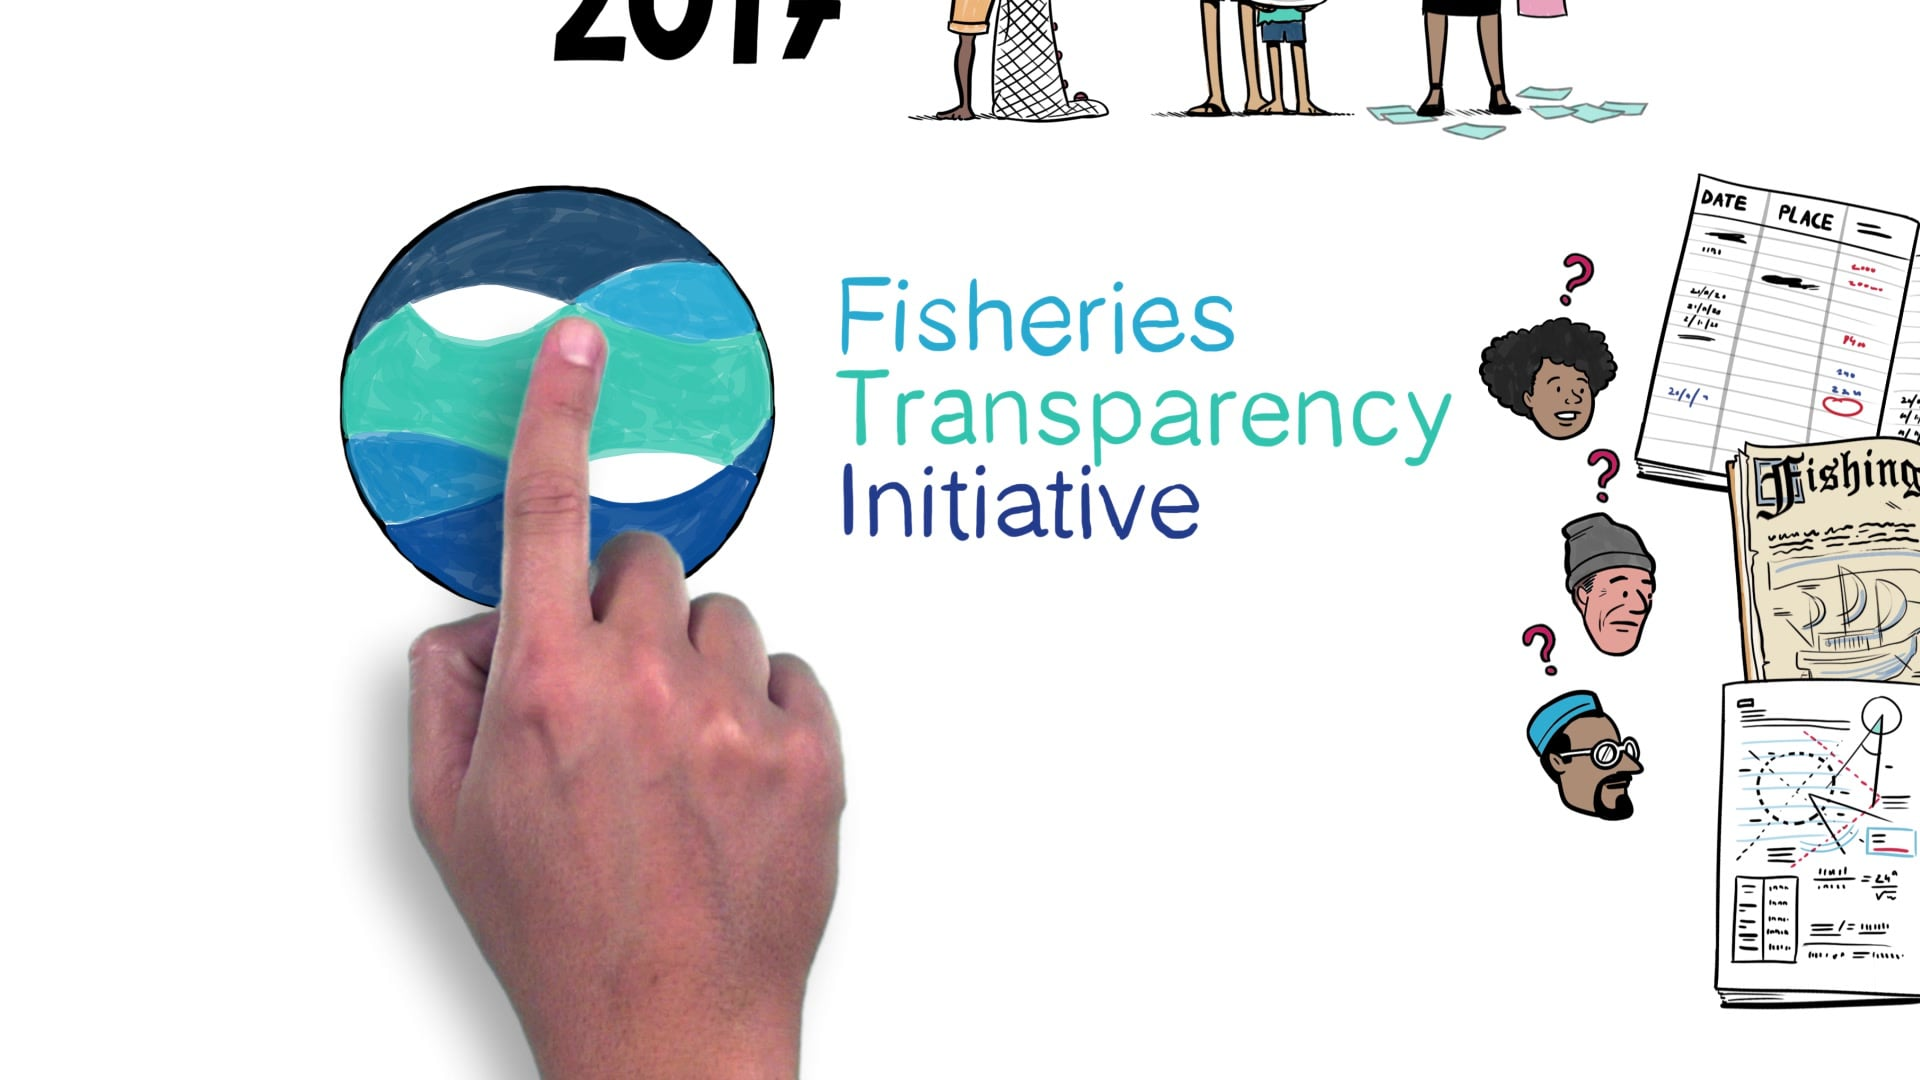 FiTI | Why we NEED transparency in fisheries: Part 1 | Whiteboard animation